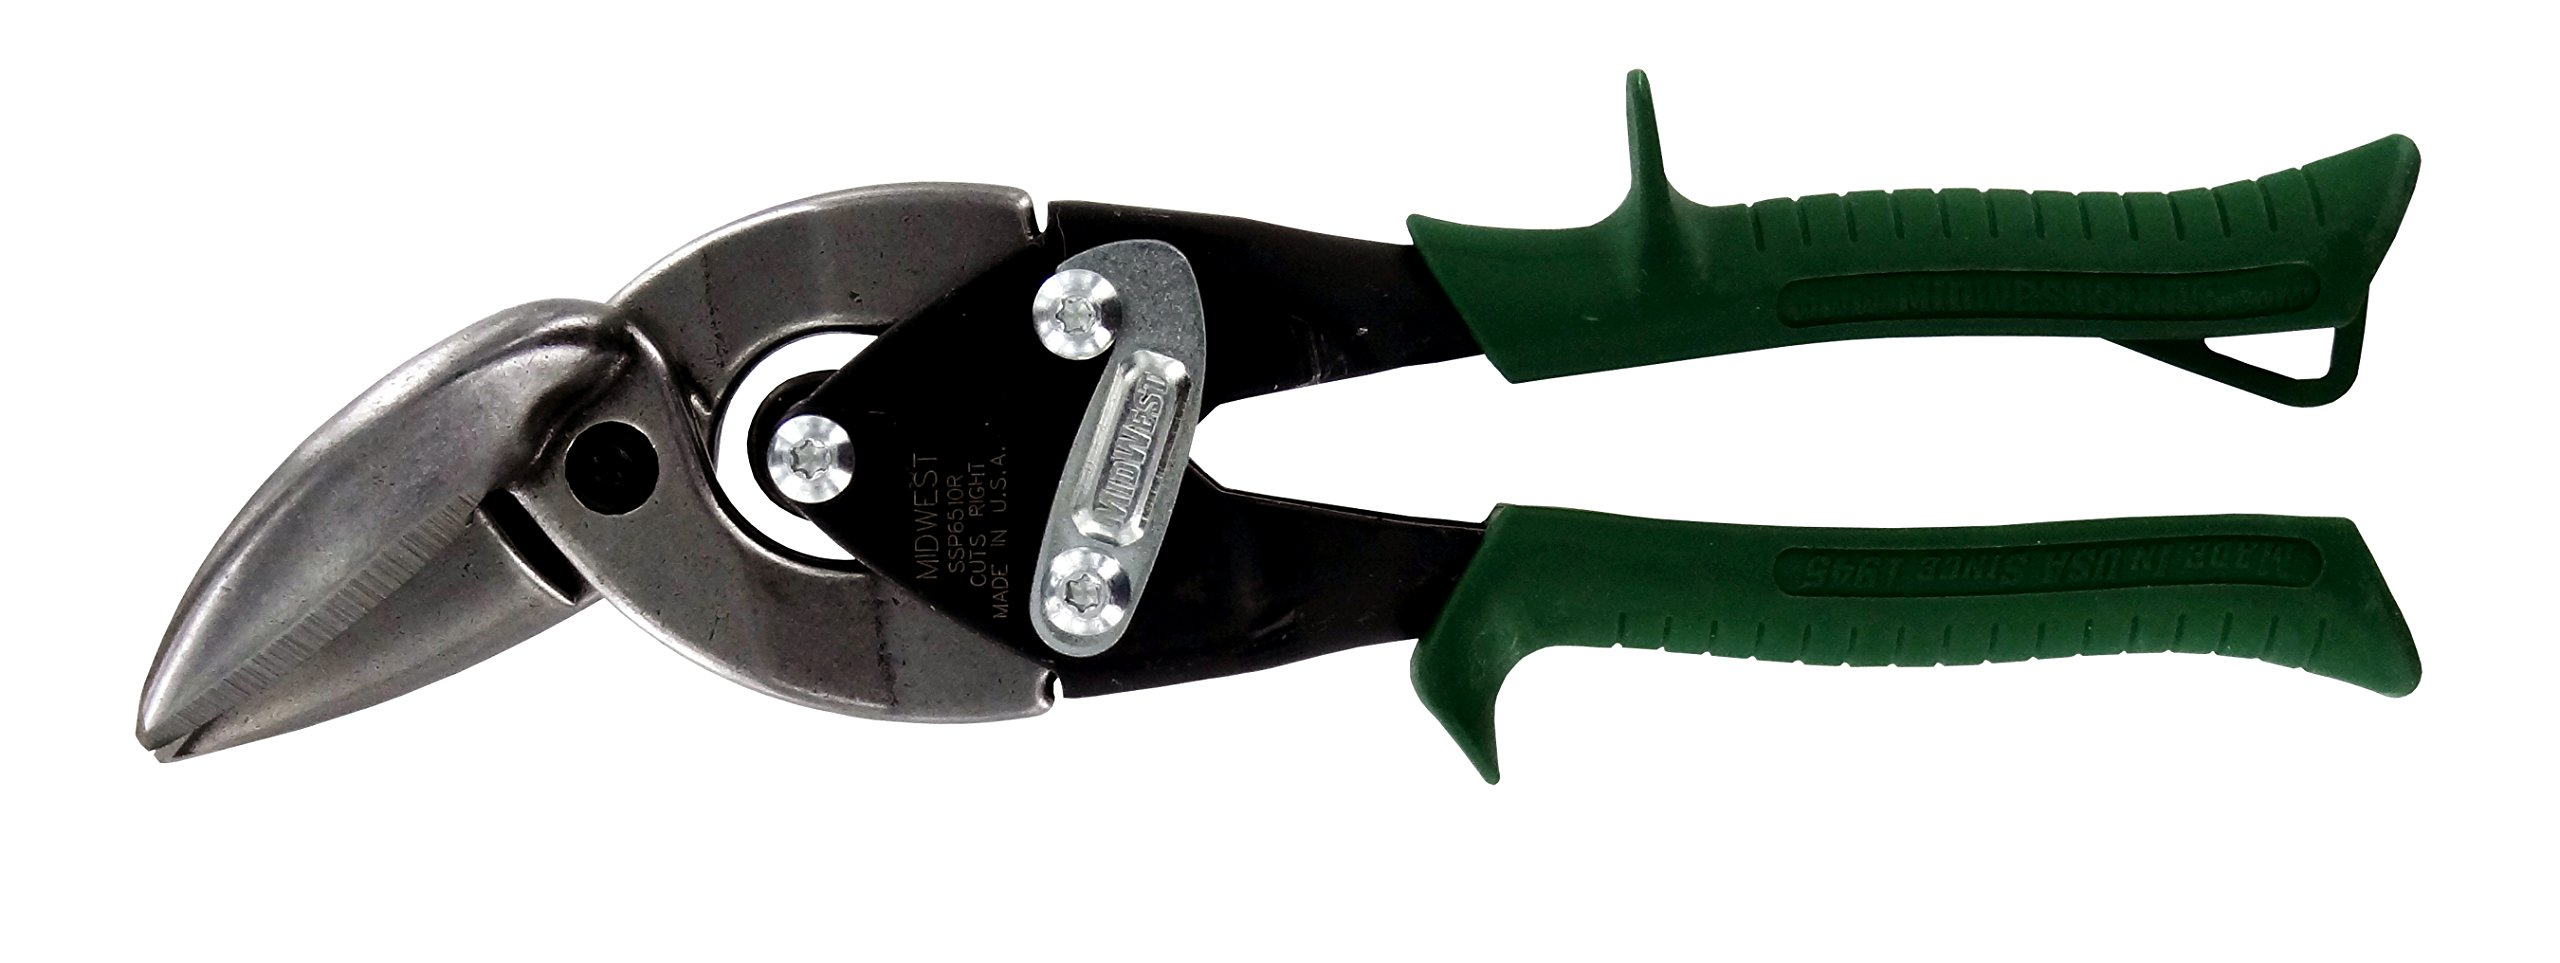 MIDWEST Aviation Snip - Right Cut Offset Stainless Steel Cutting Shears with Forged Blade & KUSH'N-POWER Comfort Grips - MWT-SS6510R